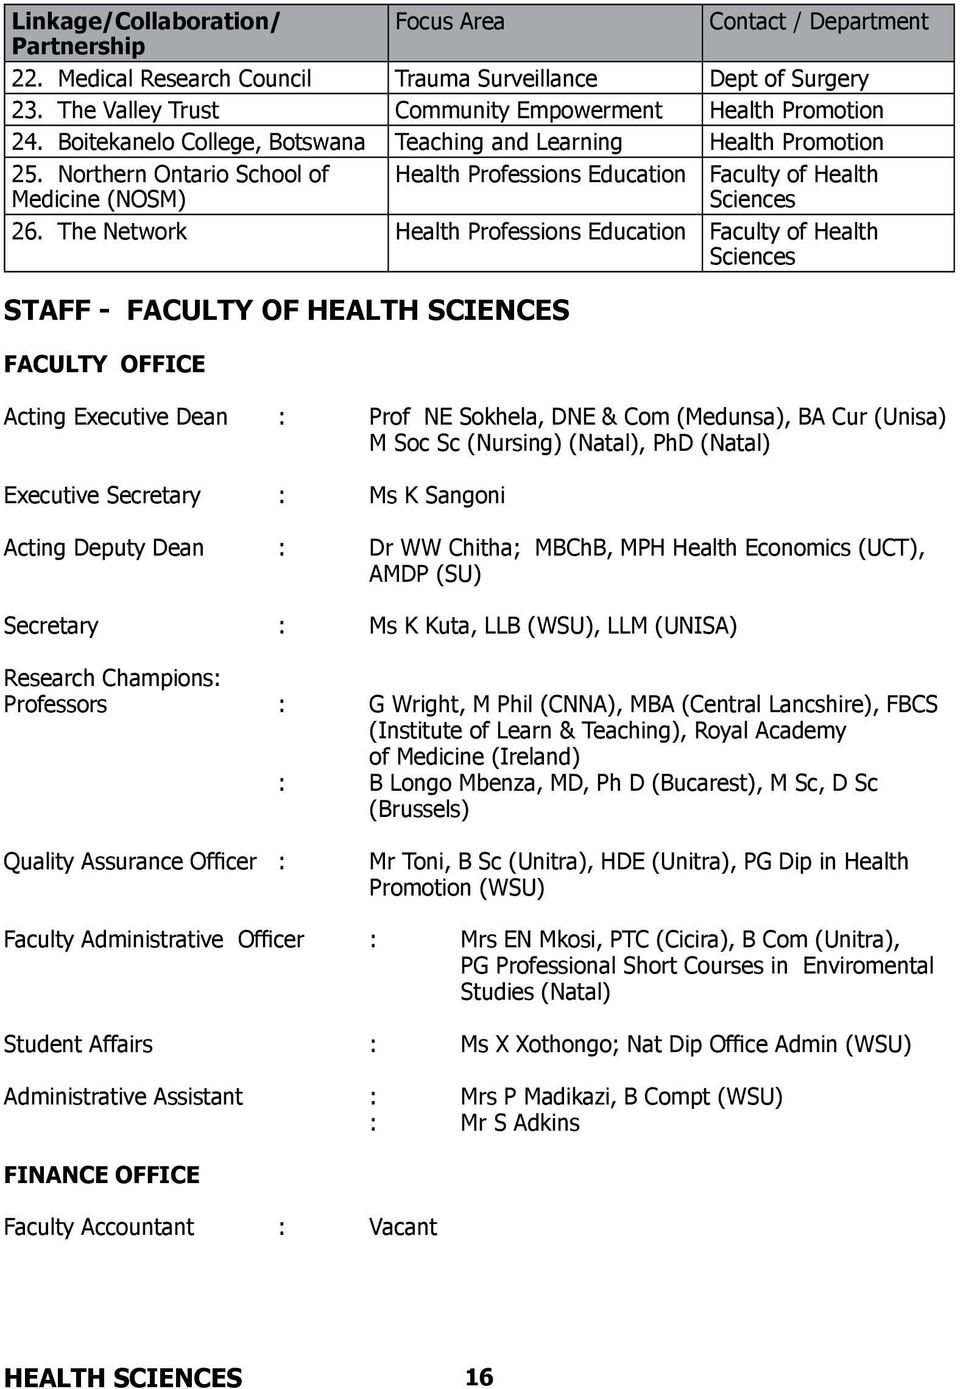 The Network Health Professions Education Faculty of Health Sciences STAFF - FACULTY OF HEALTH SCIENCES FACULTY OFFICE Acting Executive Dean : Prof NE Sokhela, DNE & Com (Medunsa), BA Cur (Unisa) M